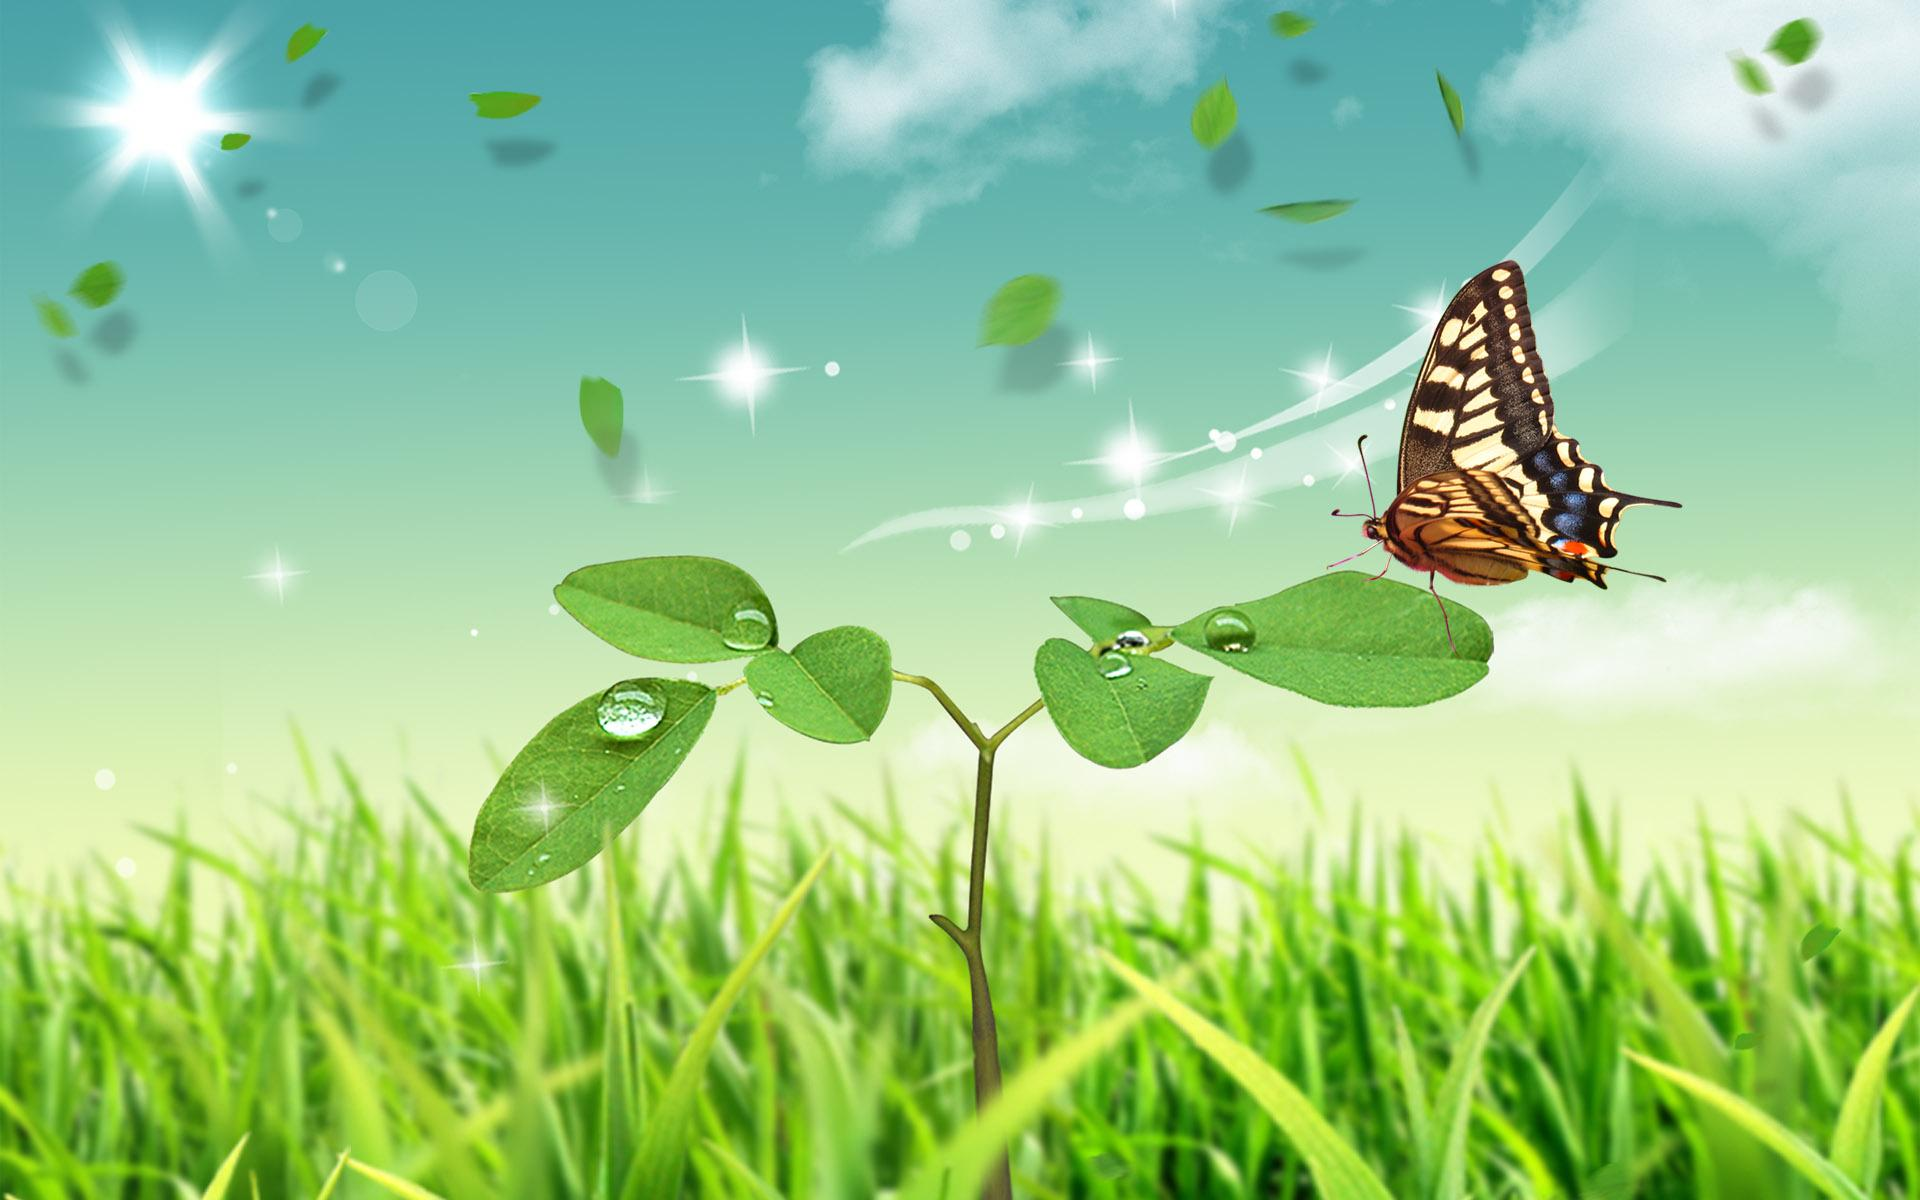 Abstract Nature Butterfly Hd Wallpaper | Download cool HD